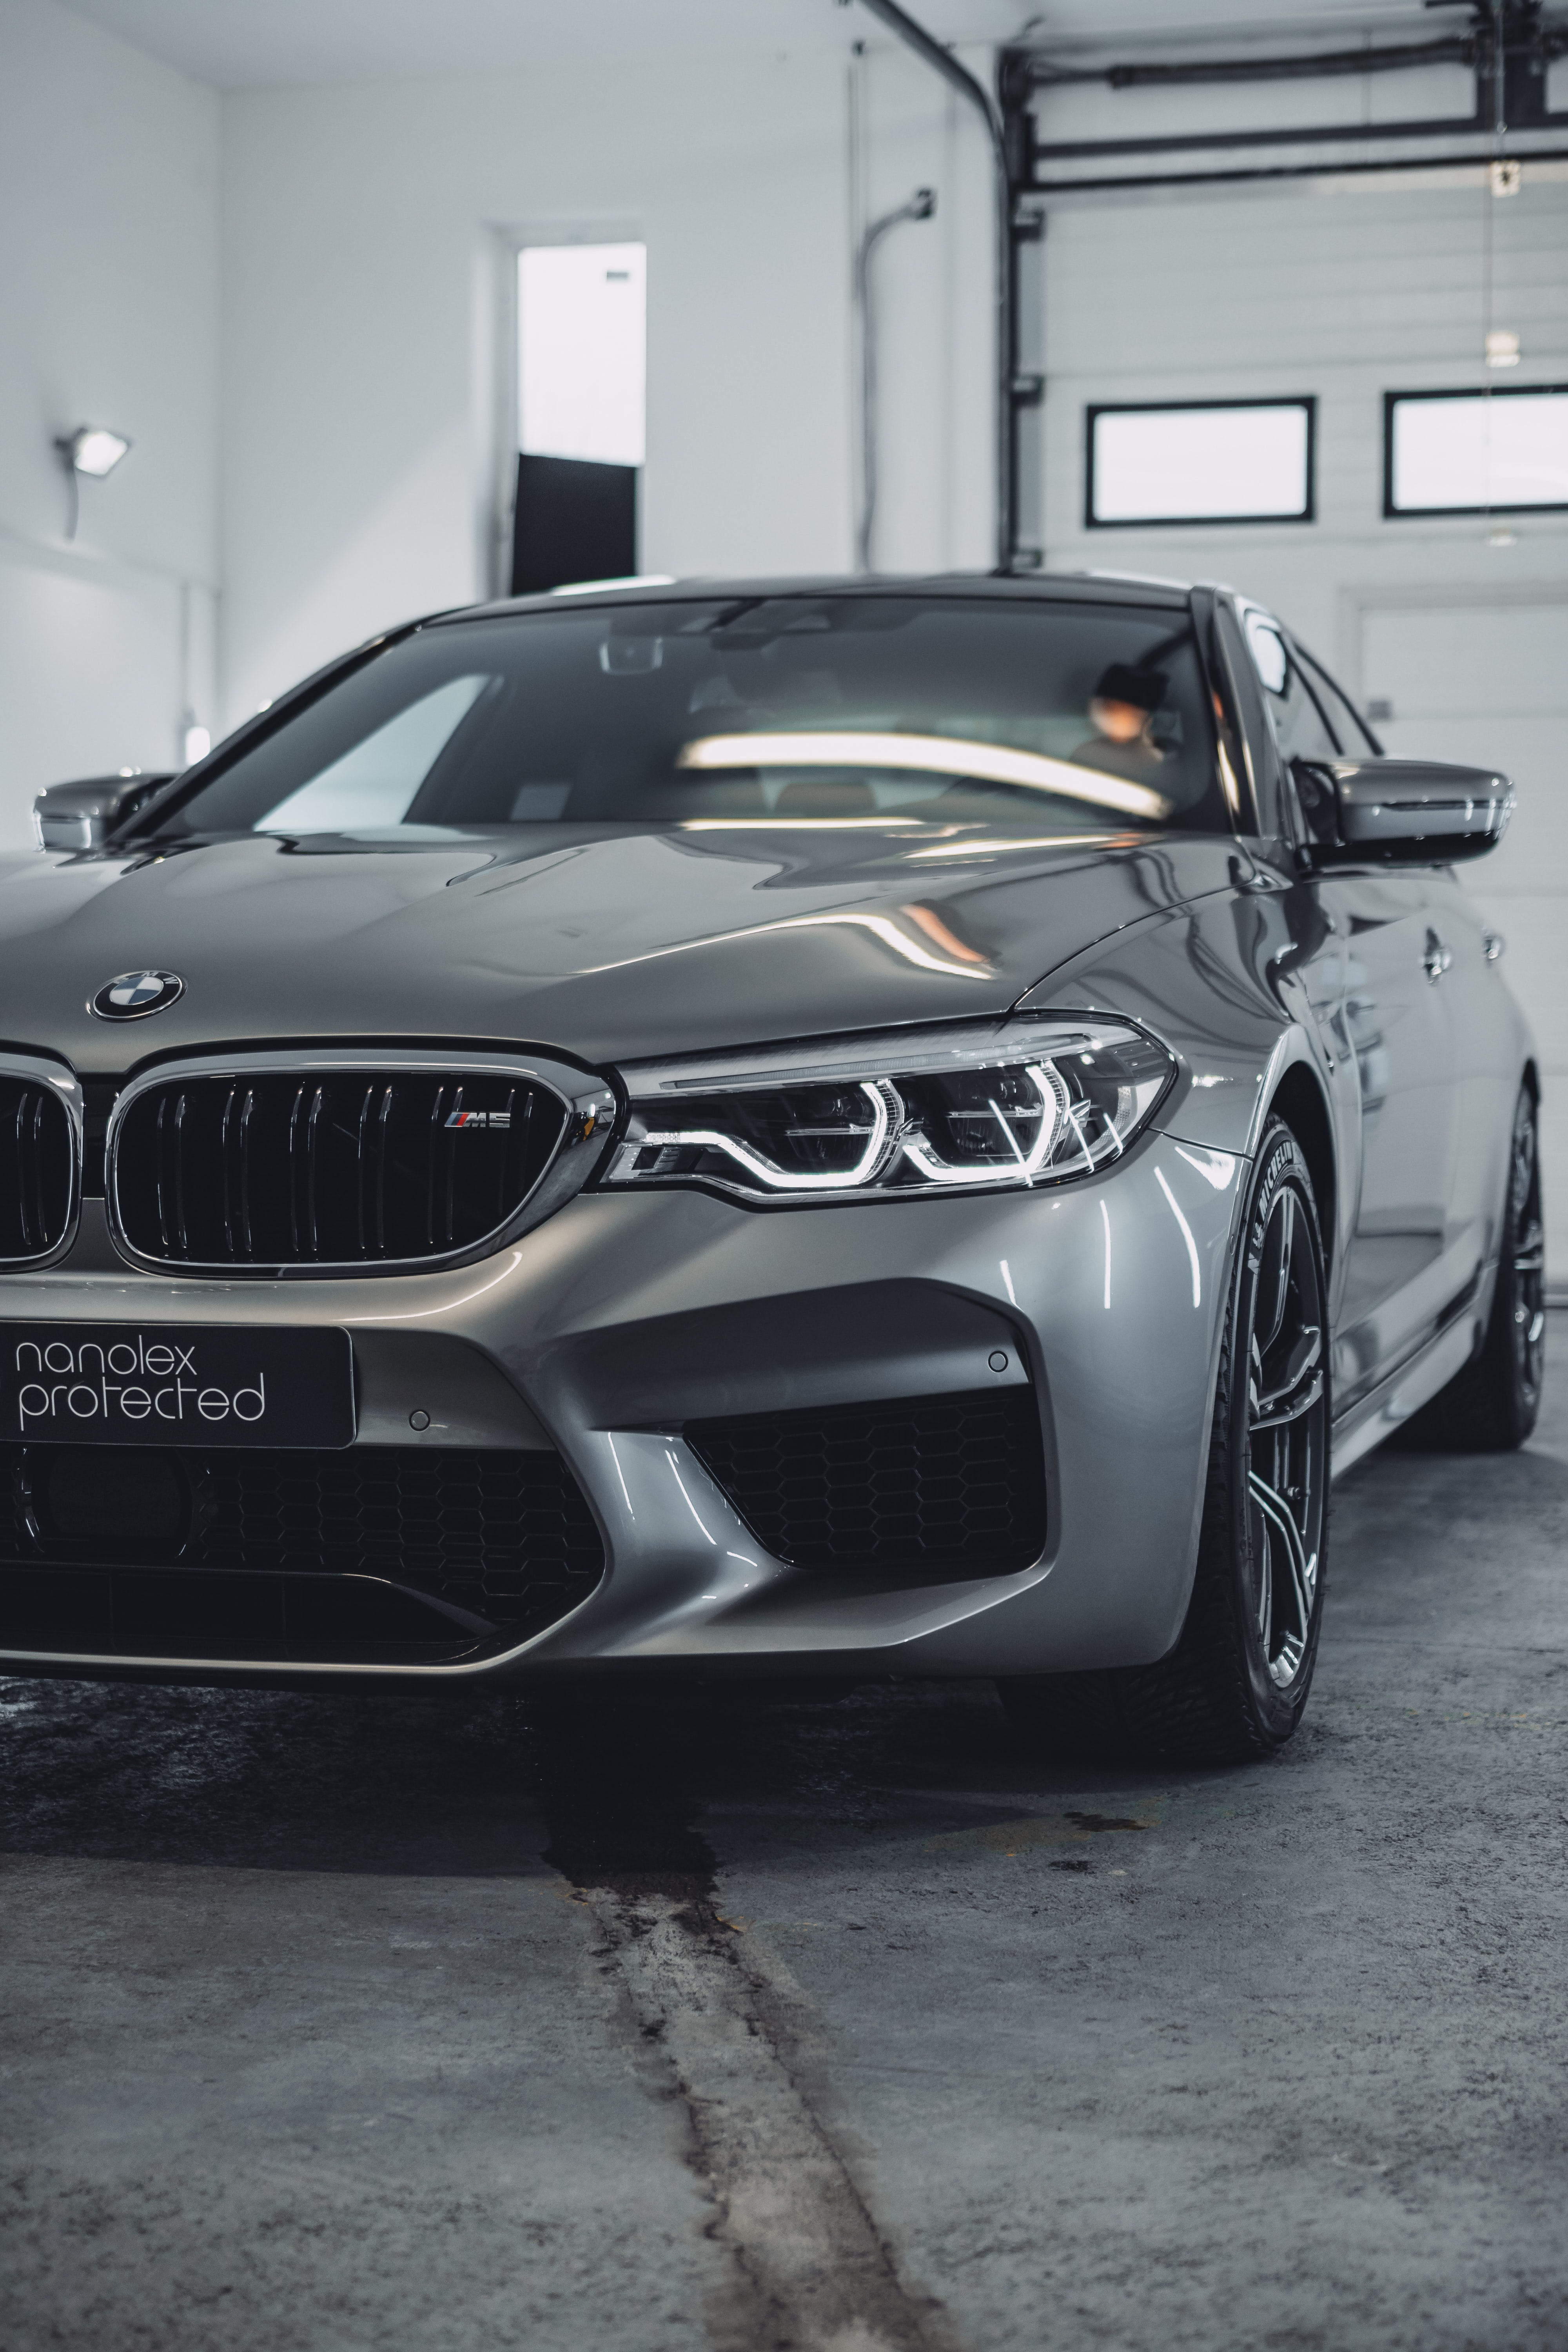 Gray Bmw Sedan Photo Free Automobile Image On Unsplash